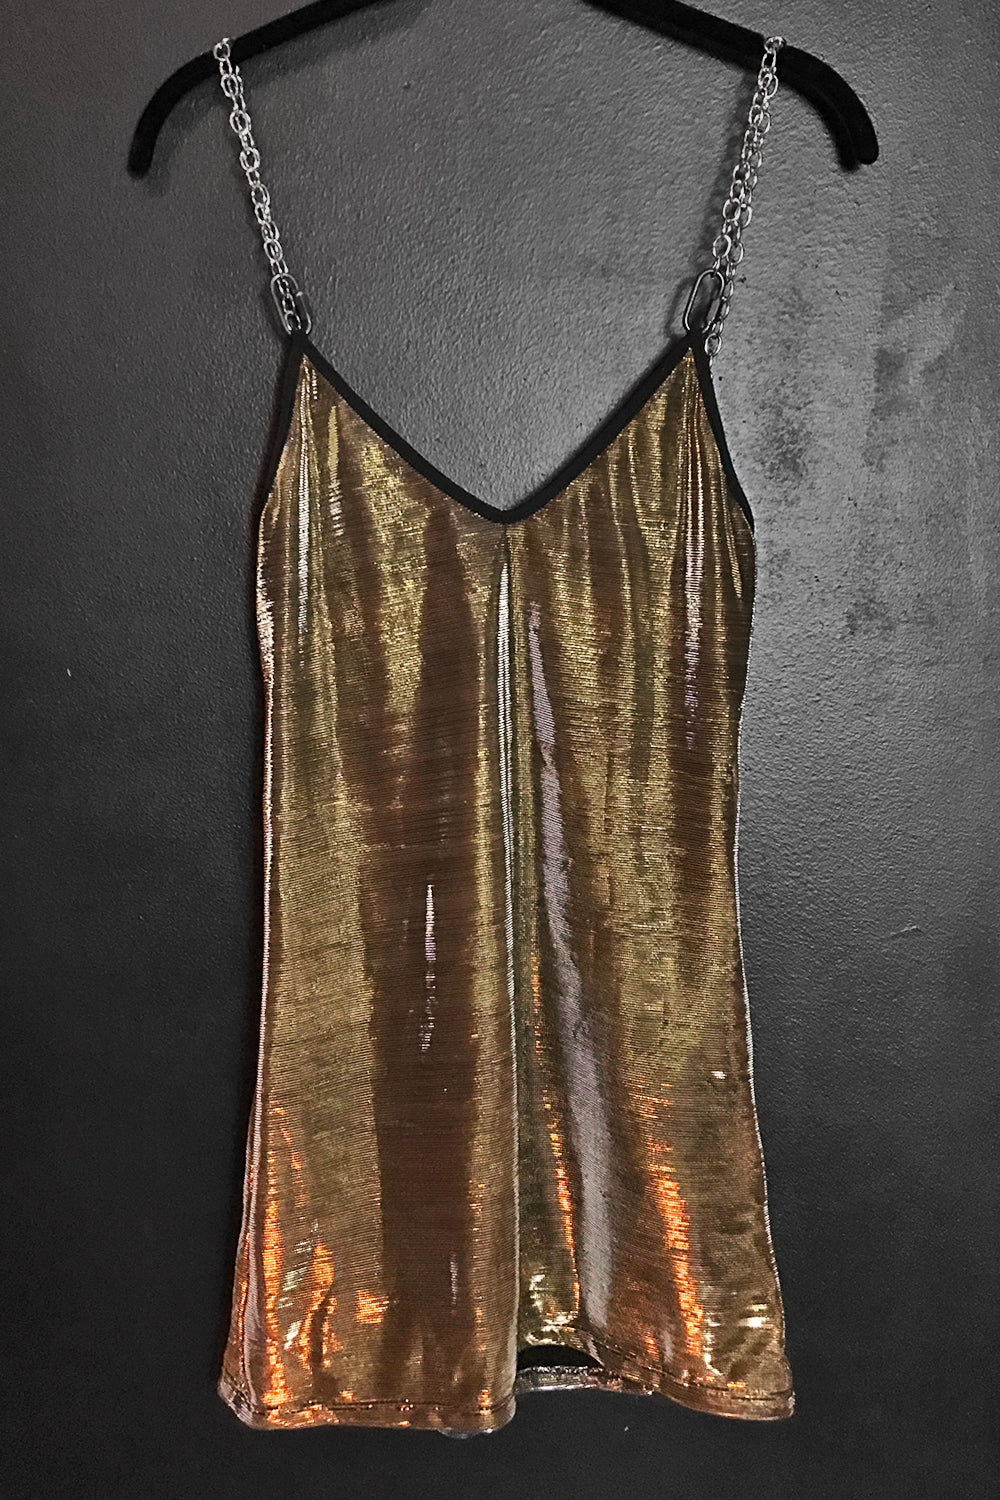 PRE-ORDER The Heavy Metal Chain Dress・Metallic Silver Gold